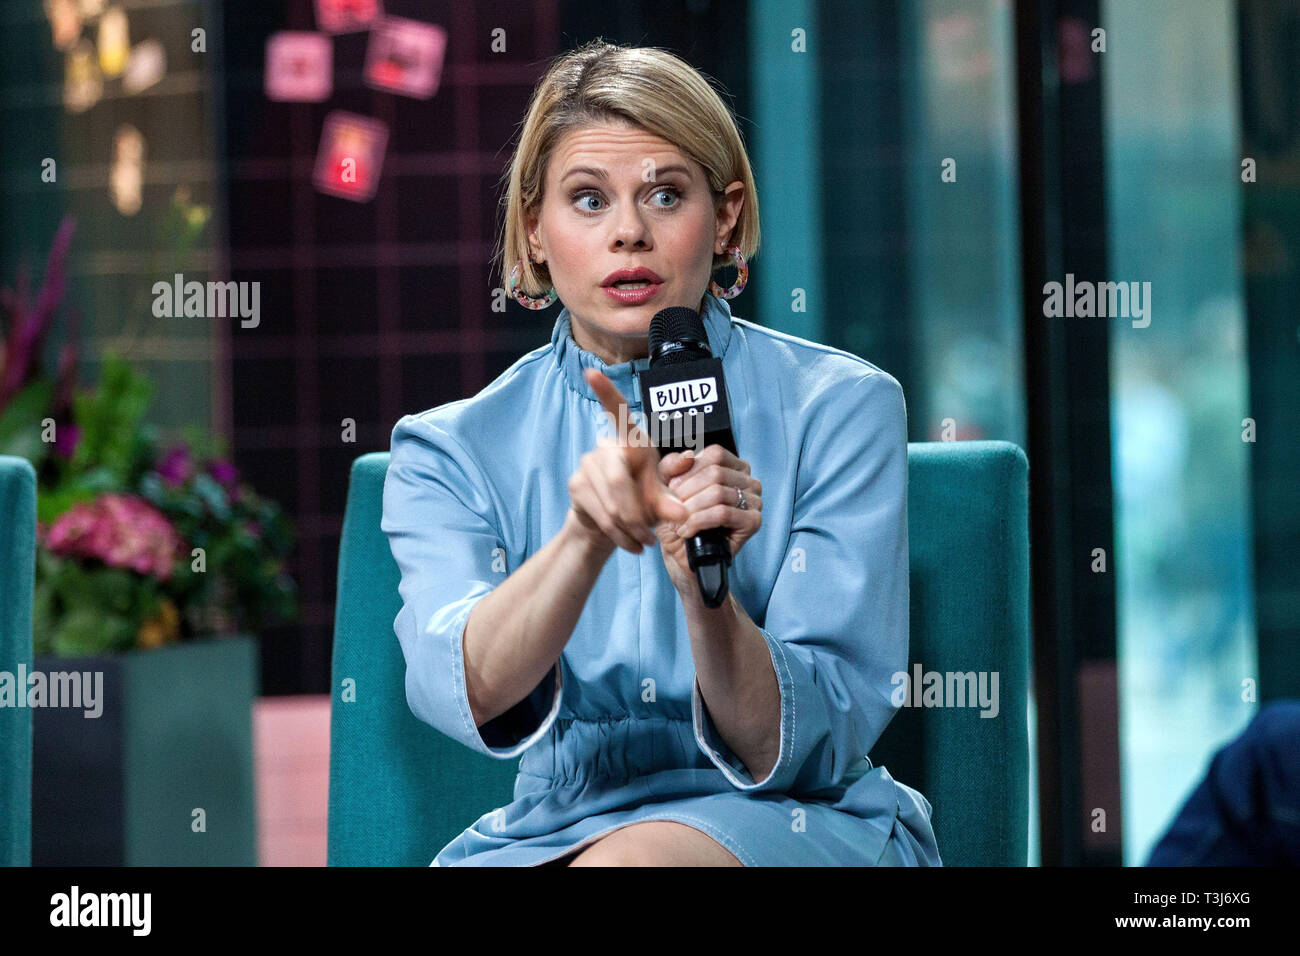 "New York, USA. 09 Apr, 2019.  Celia Keenan-Bolger at The BUILD Series discussing ""To Kill a Mockingbird"" at BUILD Studio on April 09, 2019 in New York, NY. Credit: Steve Mack/S.D. Mack Pictures/Alamy - Stock Image"